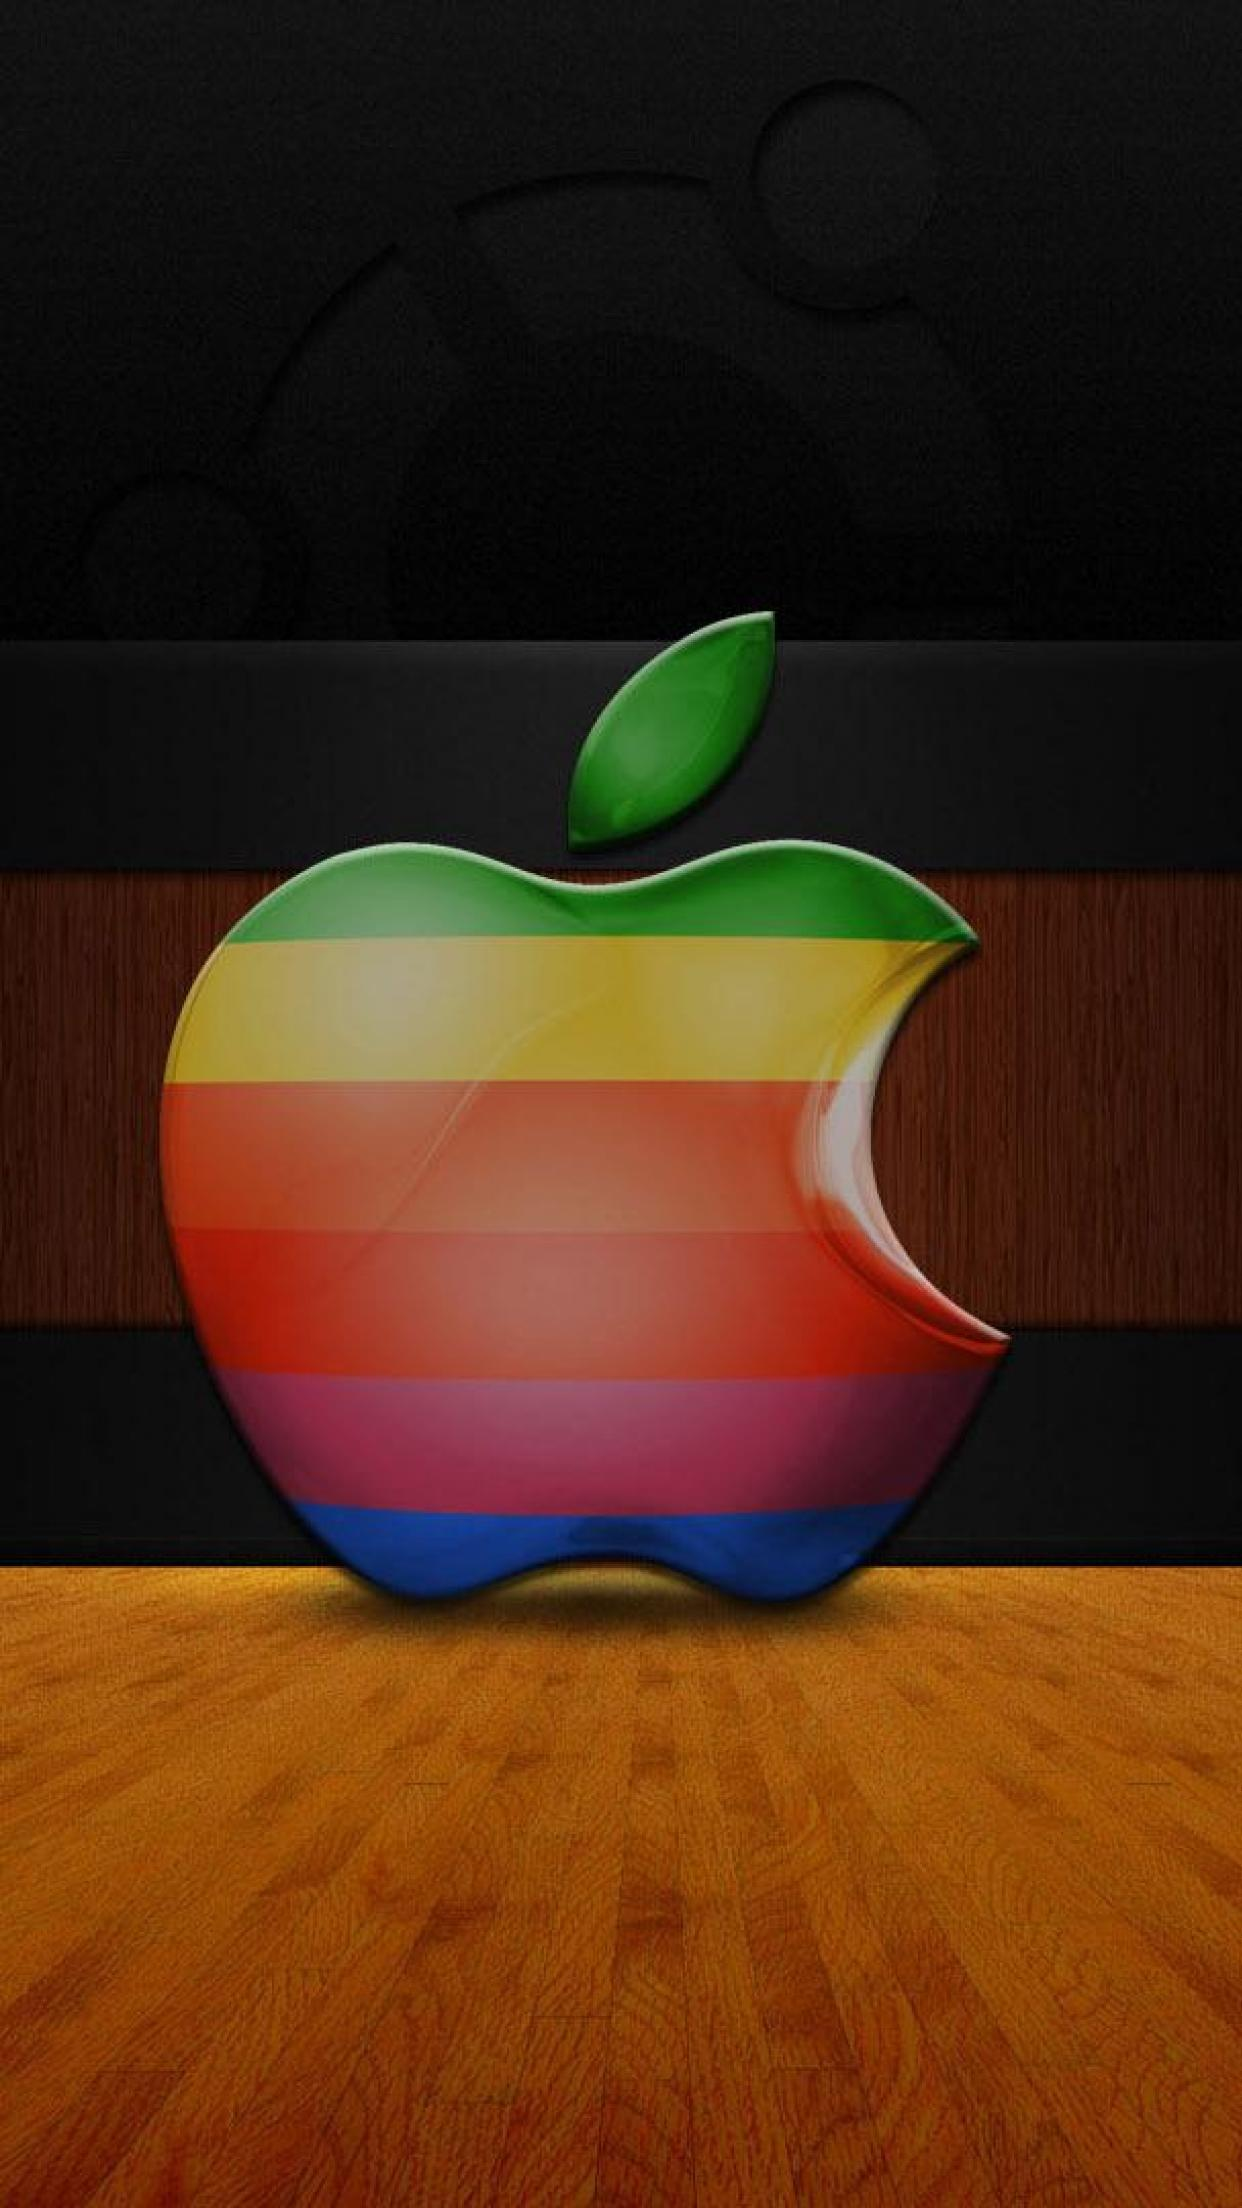 apple logo 3d wallpaper for iphone x, 8, 7, 6 - free download on